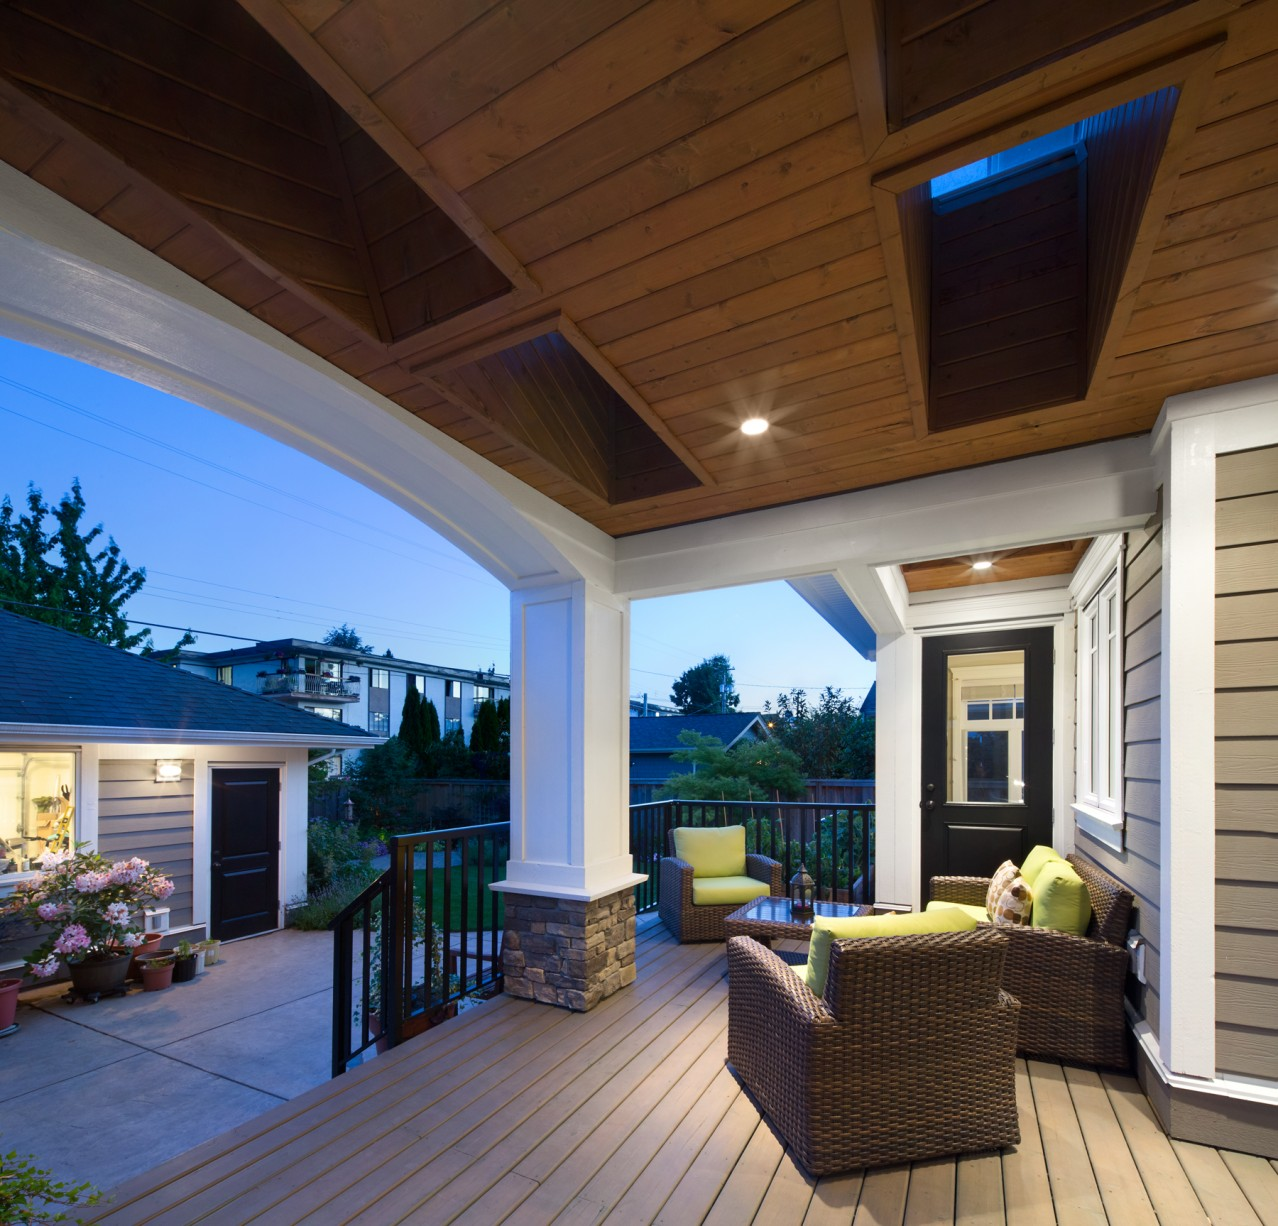 Pandora Street, Burnaby Custom Home